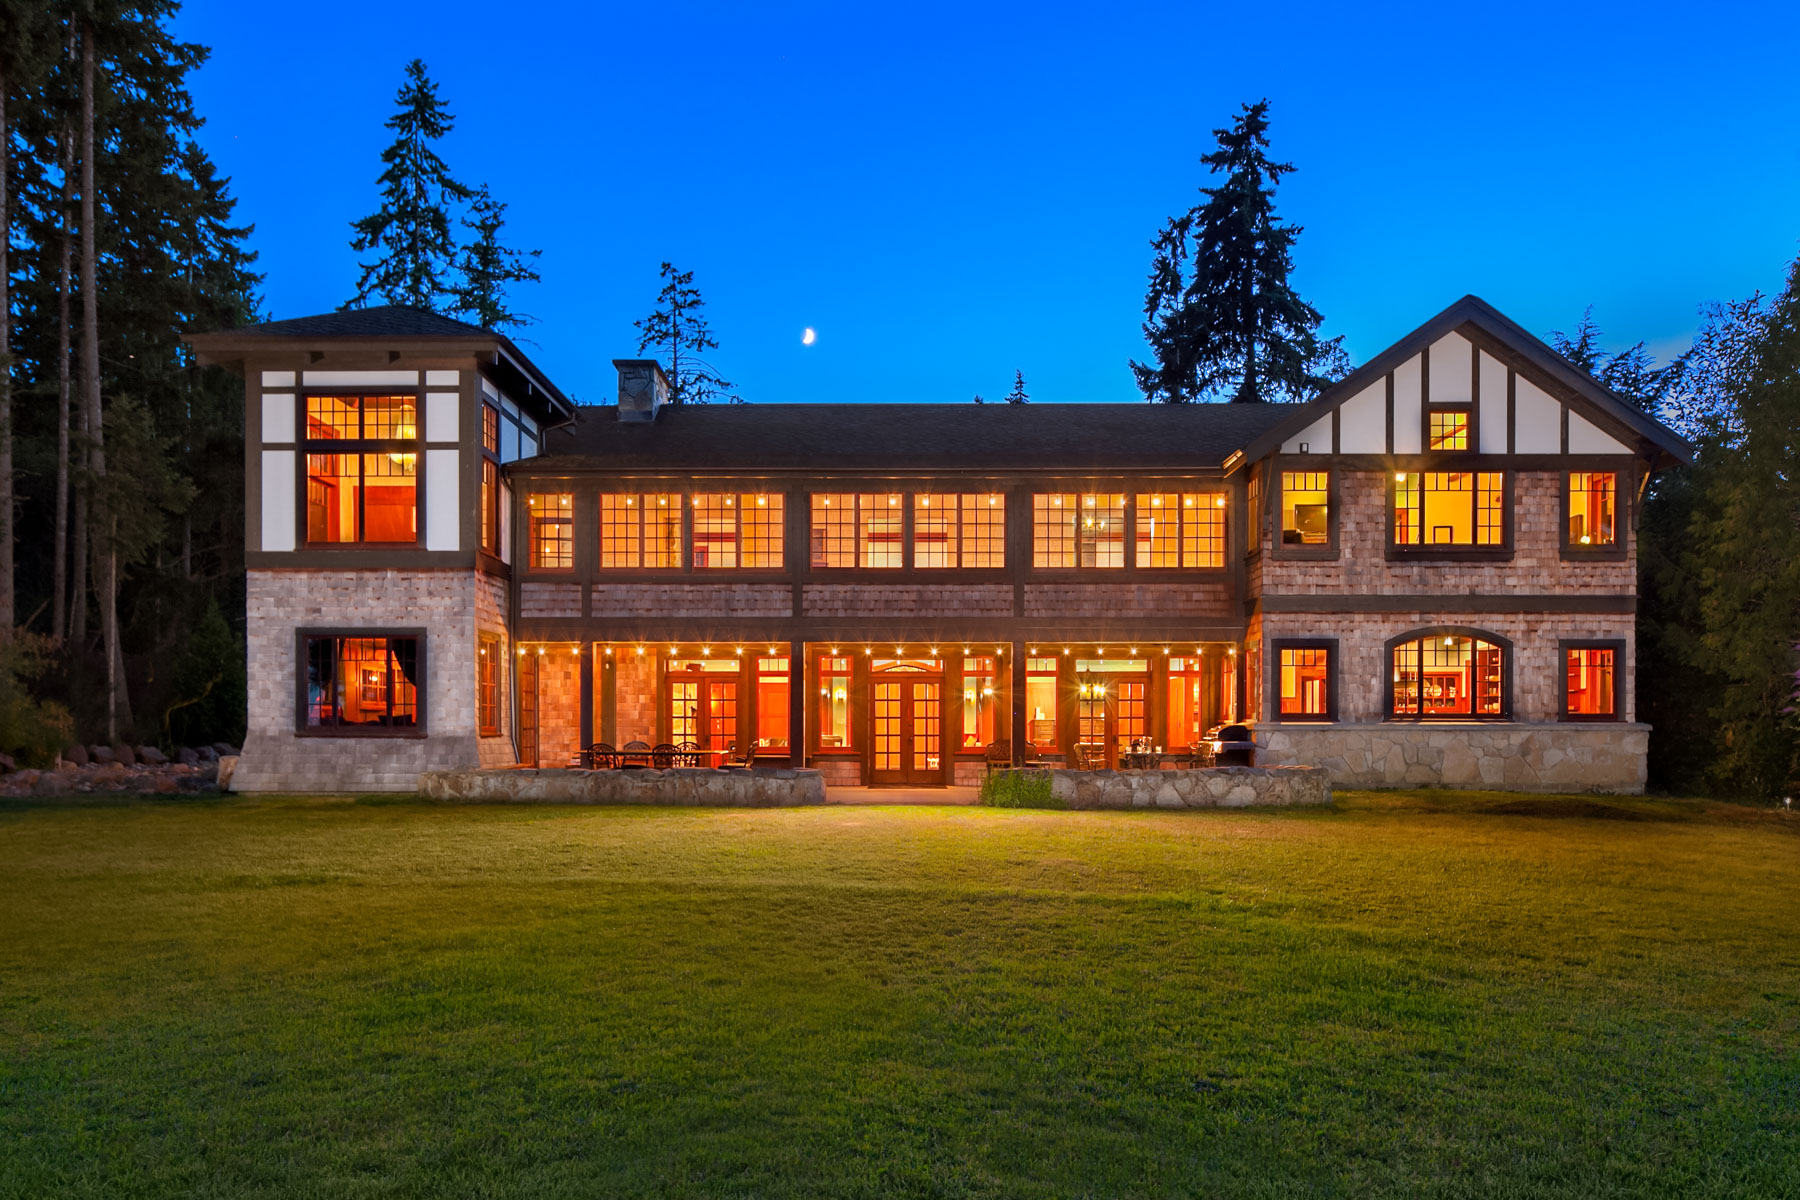 Maison unifamiliale pour l Vente à The Lodge at Blakley Harbor 10254 NE Country Club Rd Bainbridge Island, Washington 98110 États-Unis